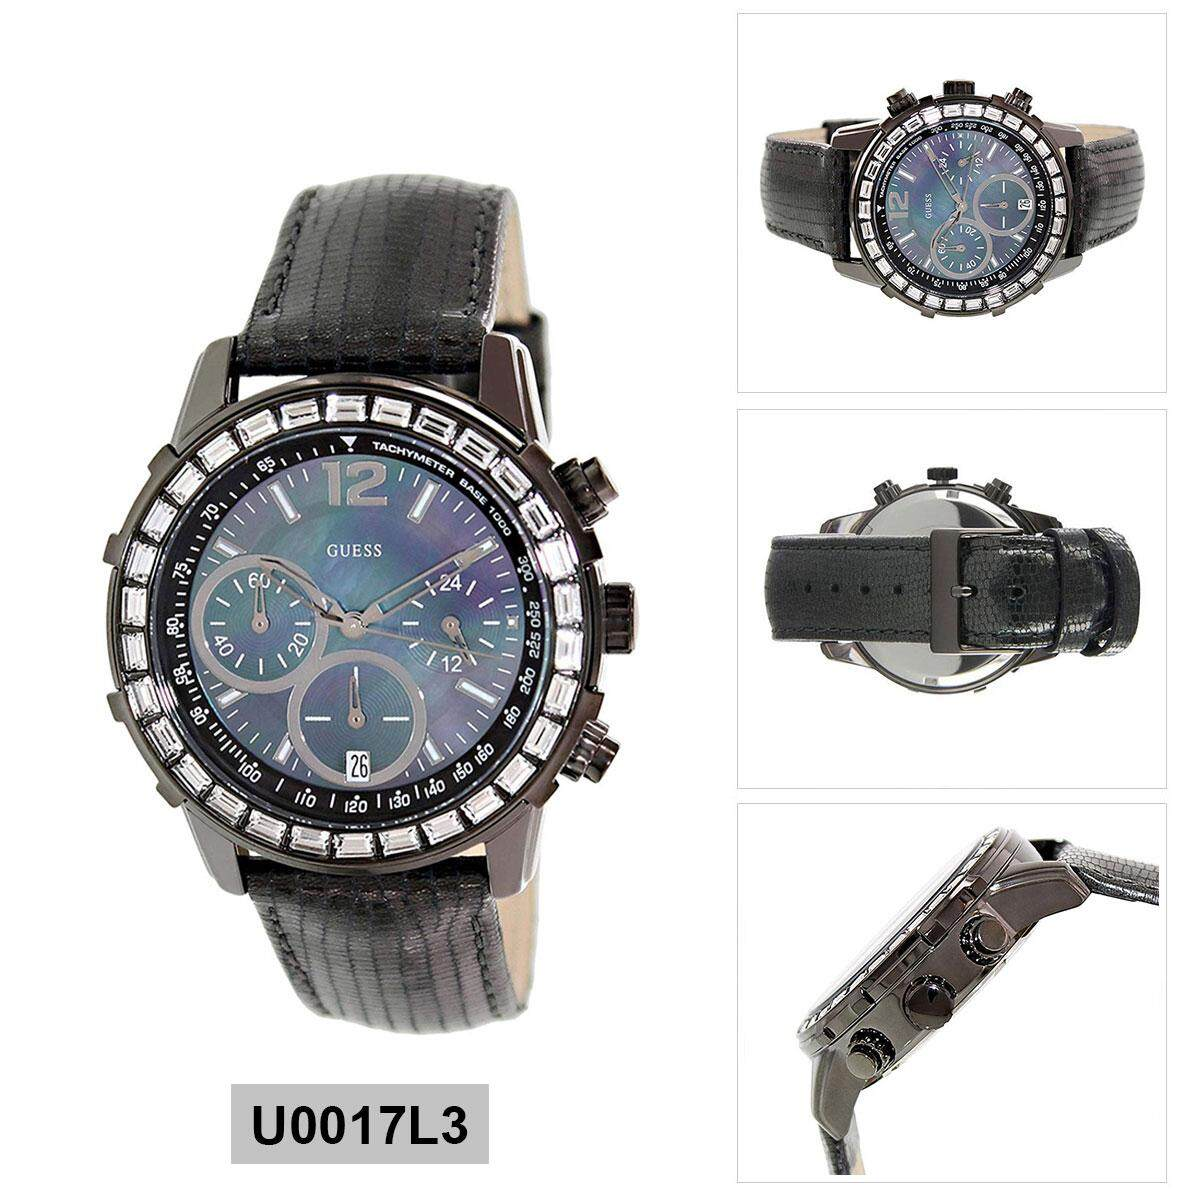 Guess Watches Price In Malaysia Best Lazada Sandal Kulit Pria Rc237 Quartz Black Stainless Steel Case Leather Strap Ladies U0017l3